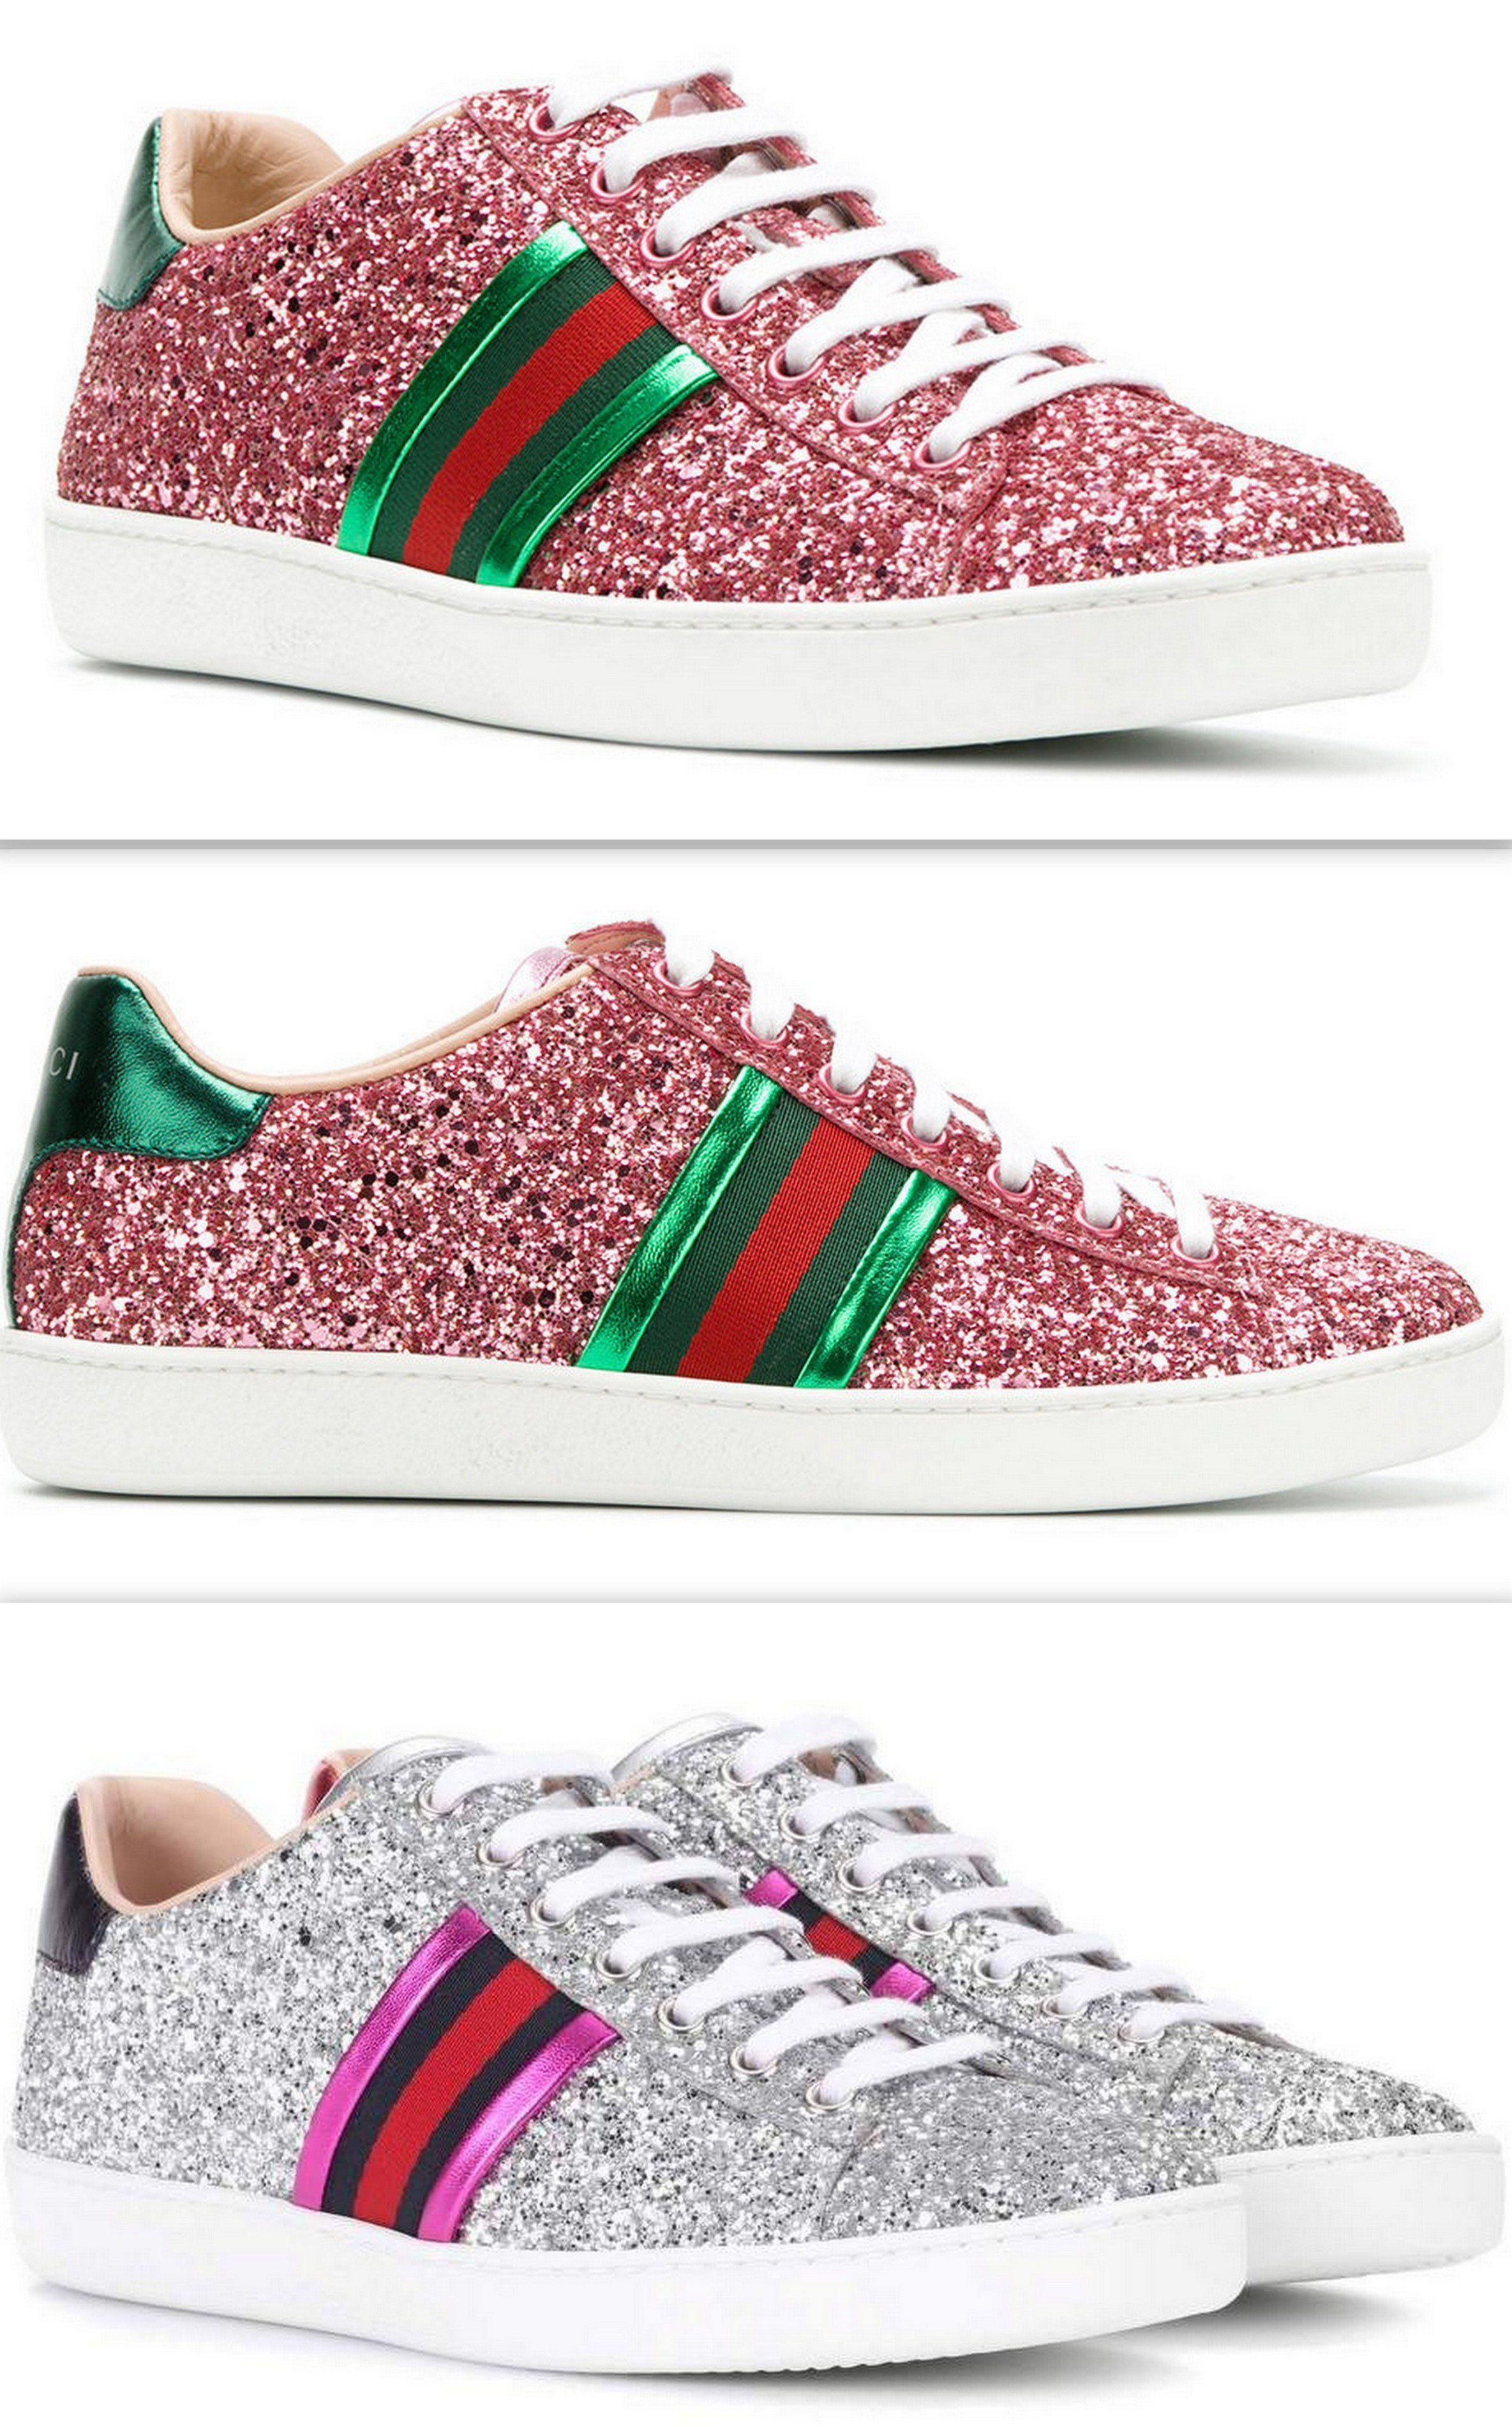 598de07db61 Ace Glitter Sneakers - Pink or Silver